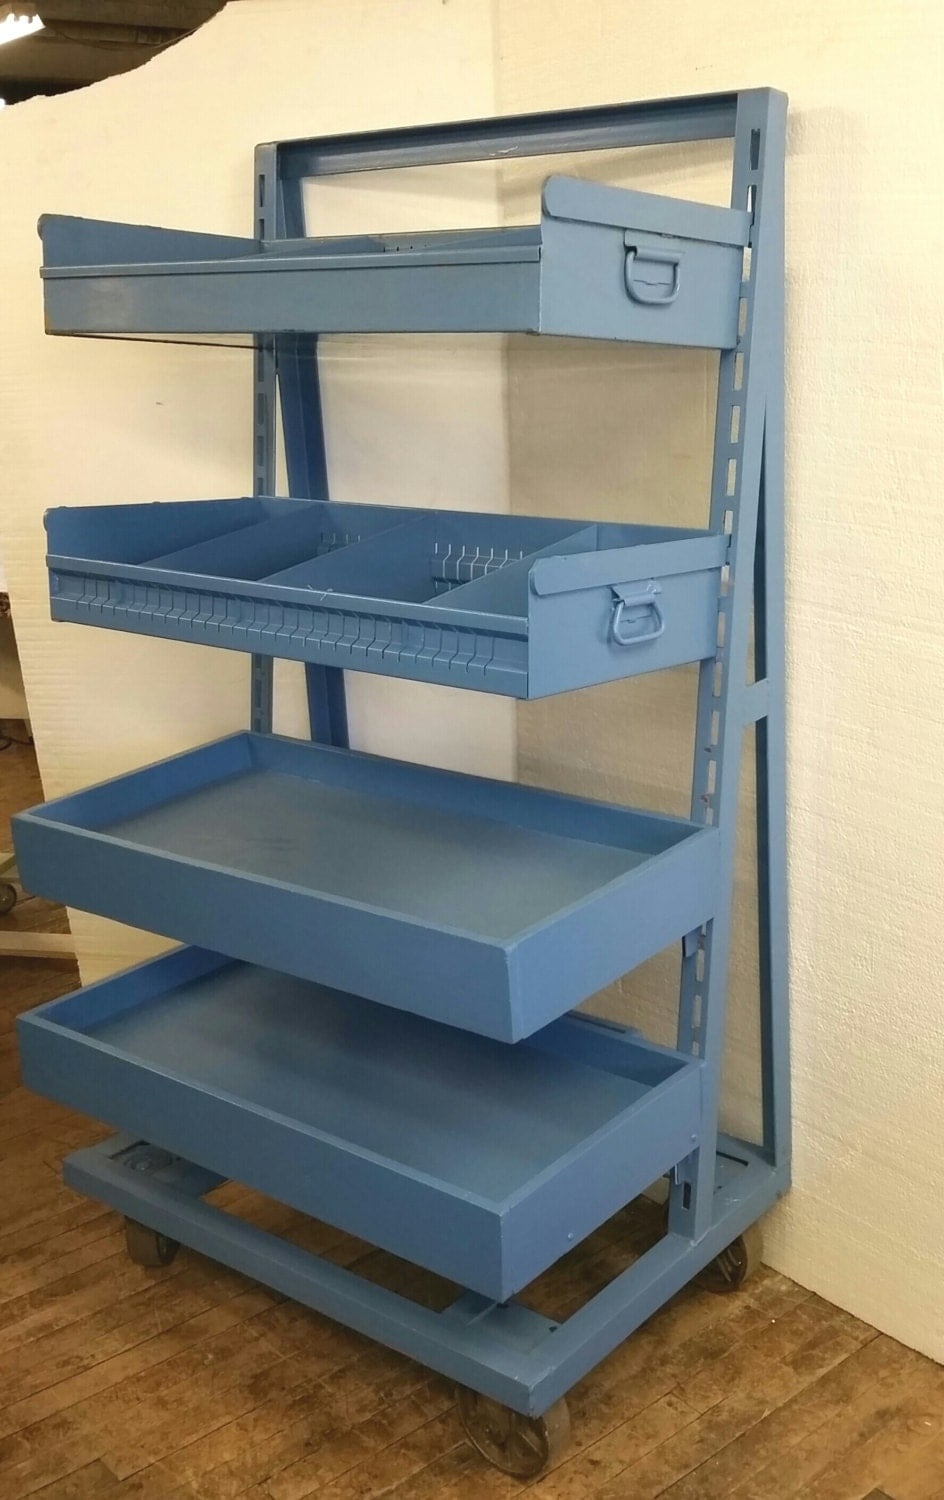 4 Bins Organizer Shelving Cart Blue Storage Bins Vintage